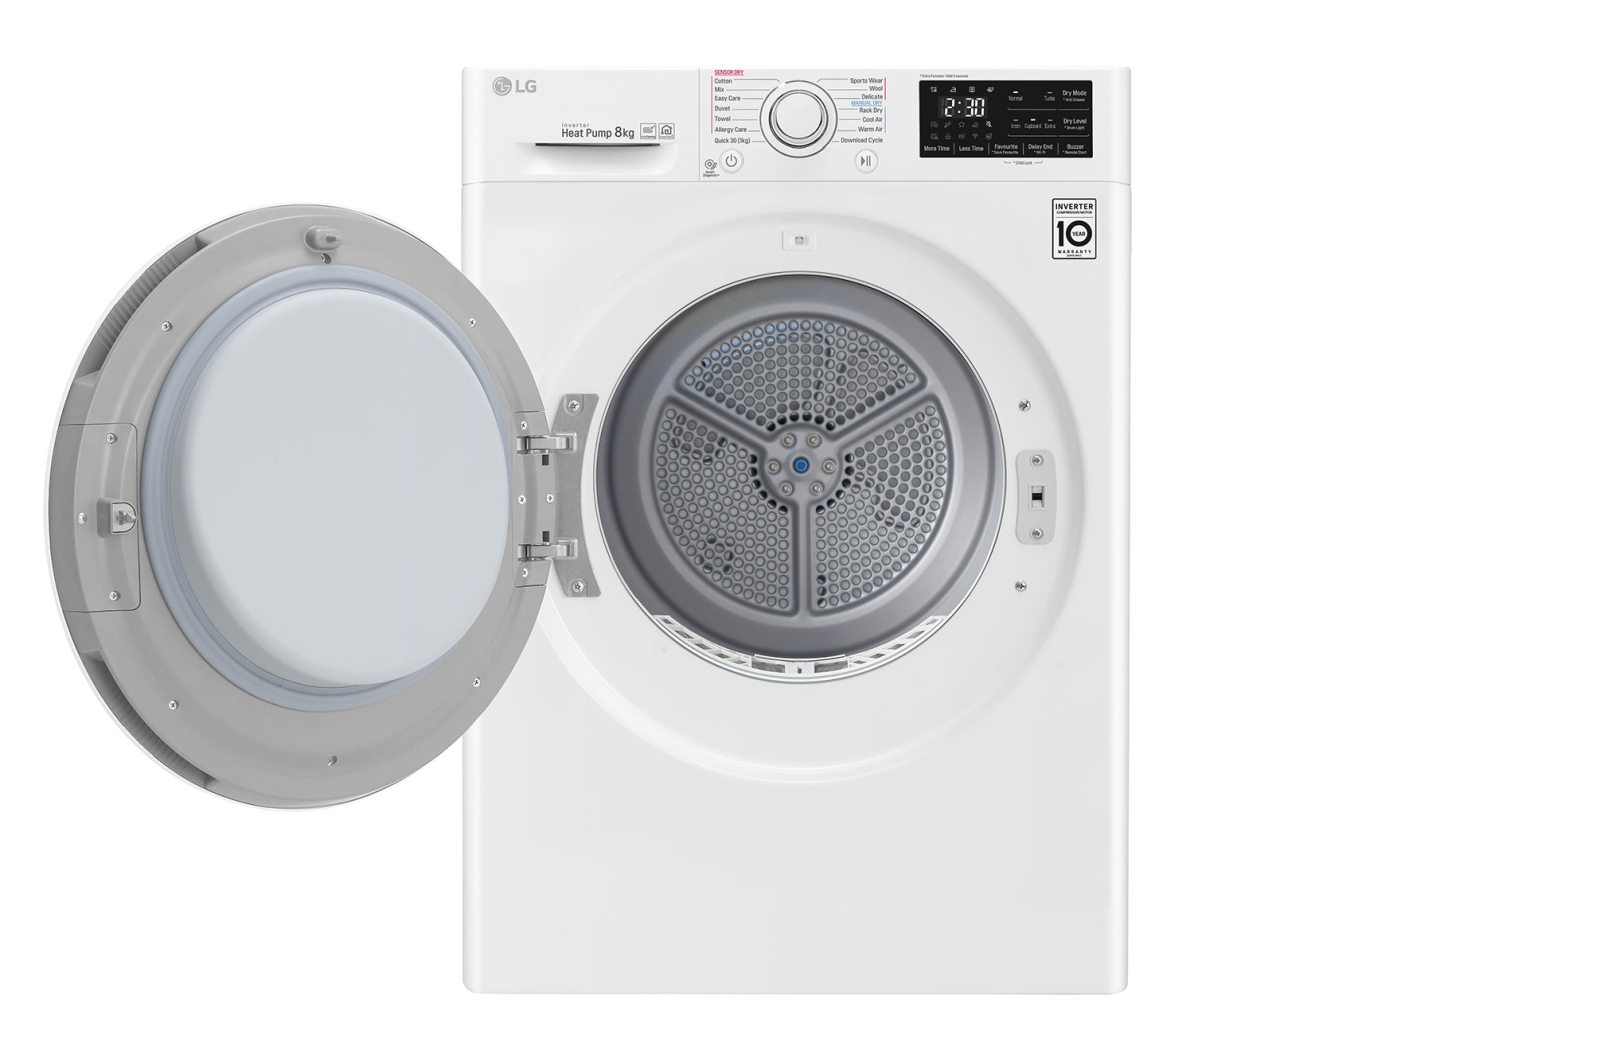 LG Heat Pump Dryer LG's Four New Eco Friendly Clothes Dryers With Smart Technology